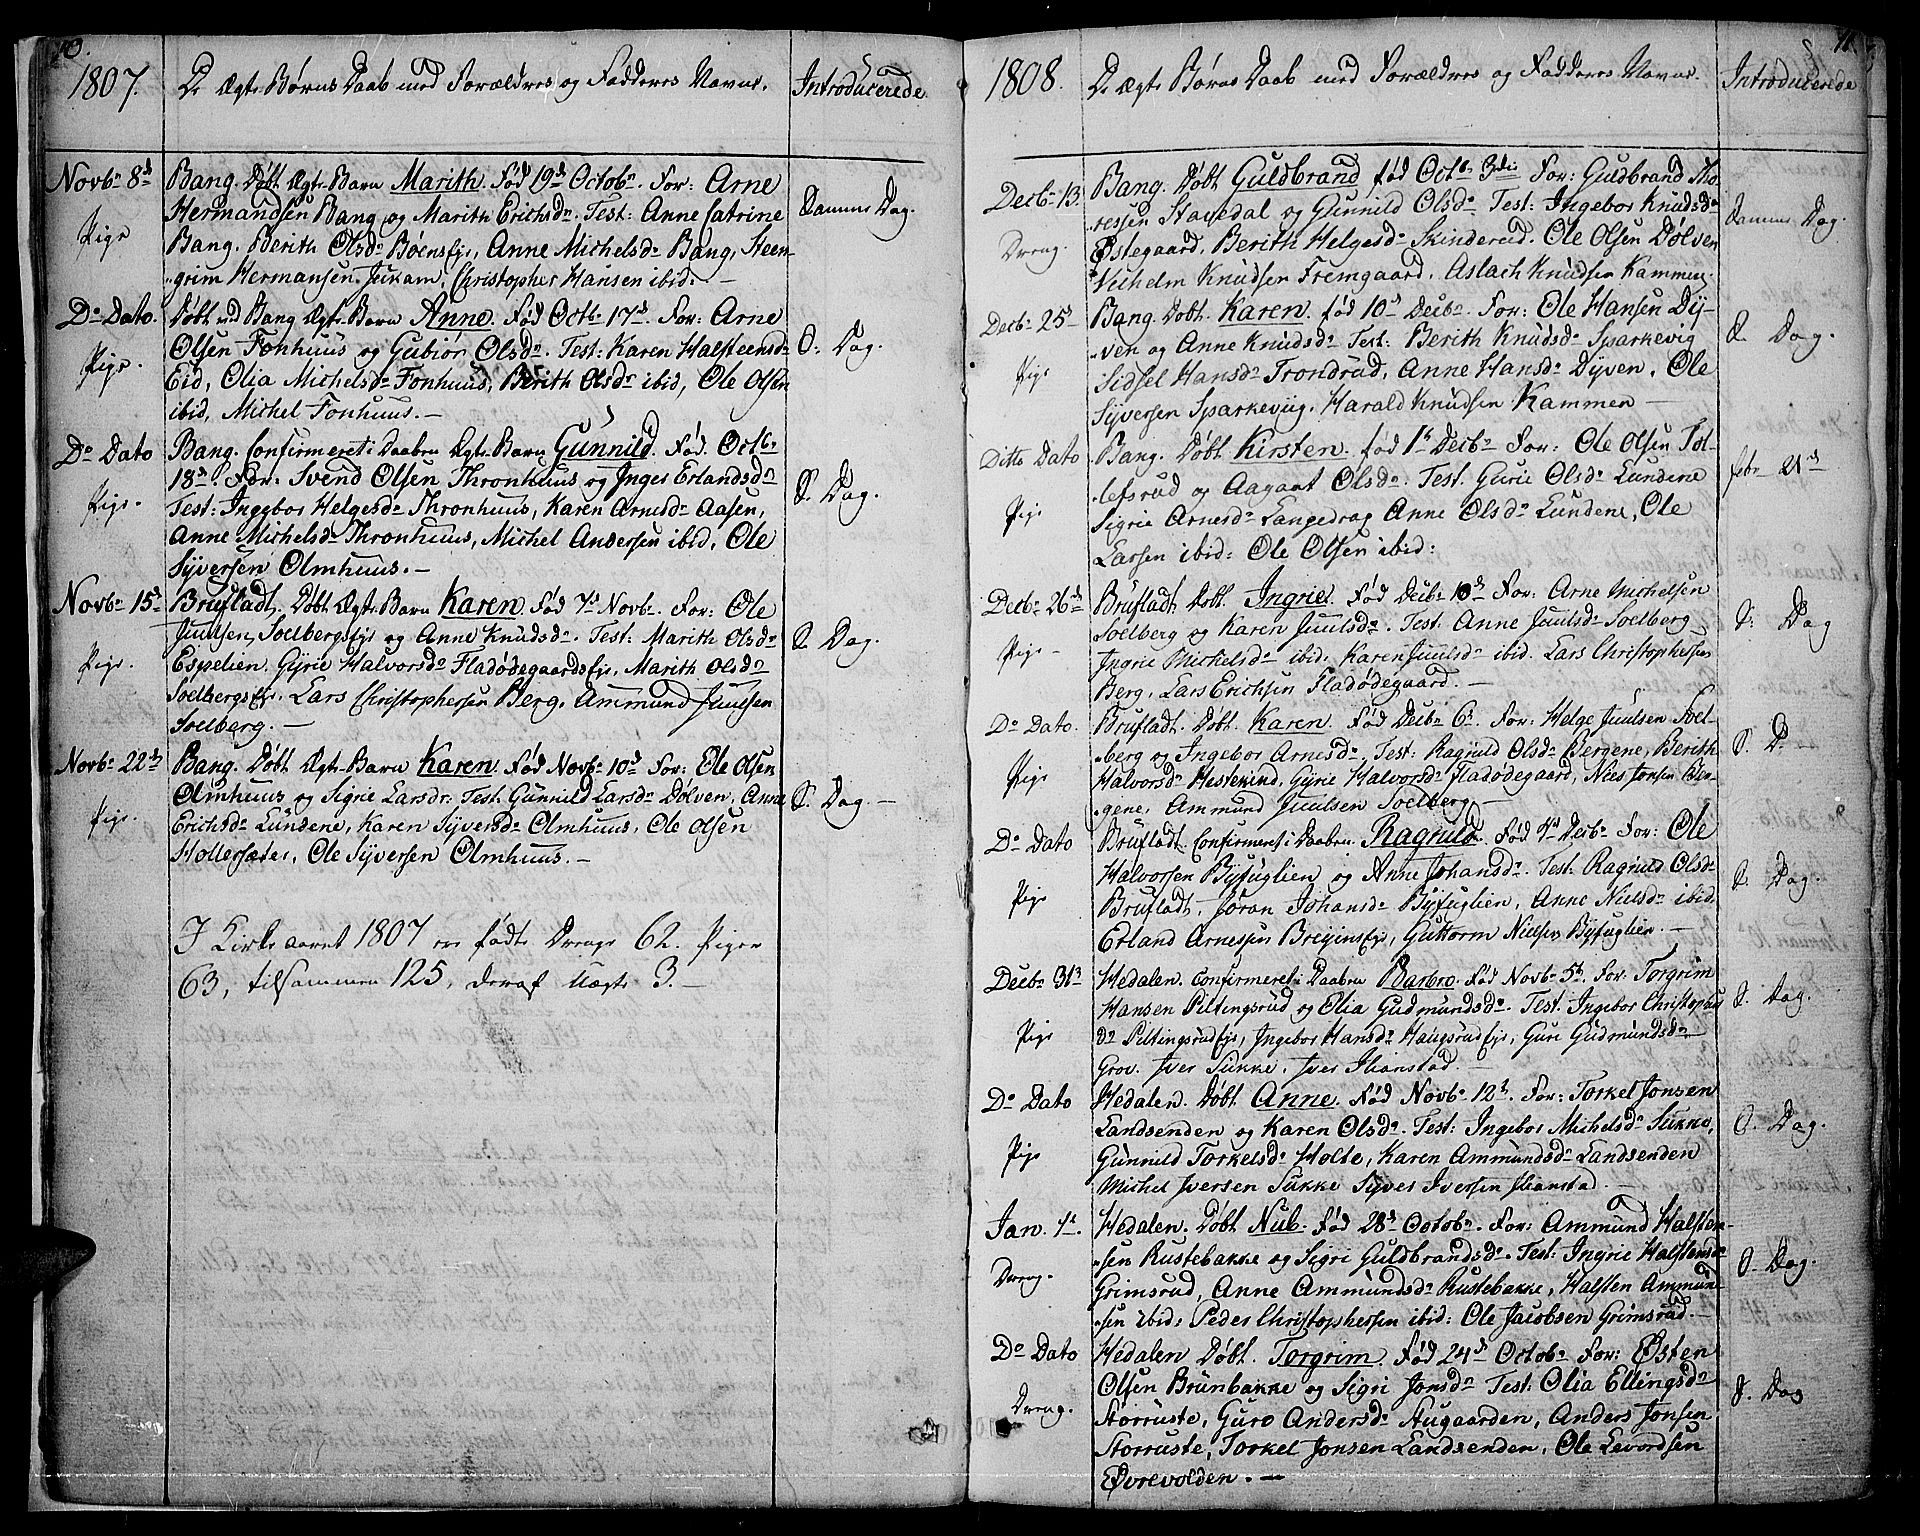 SAH, Sør-Aurdal prestekontor, Parish register (official) no. 1, 1807-1815, p. 10-11